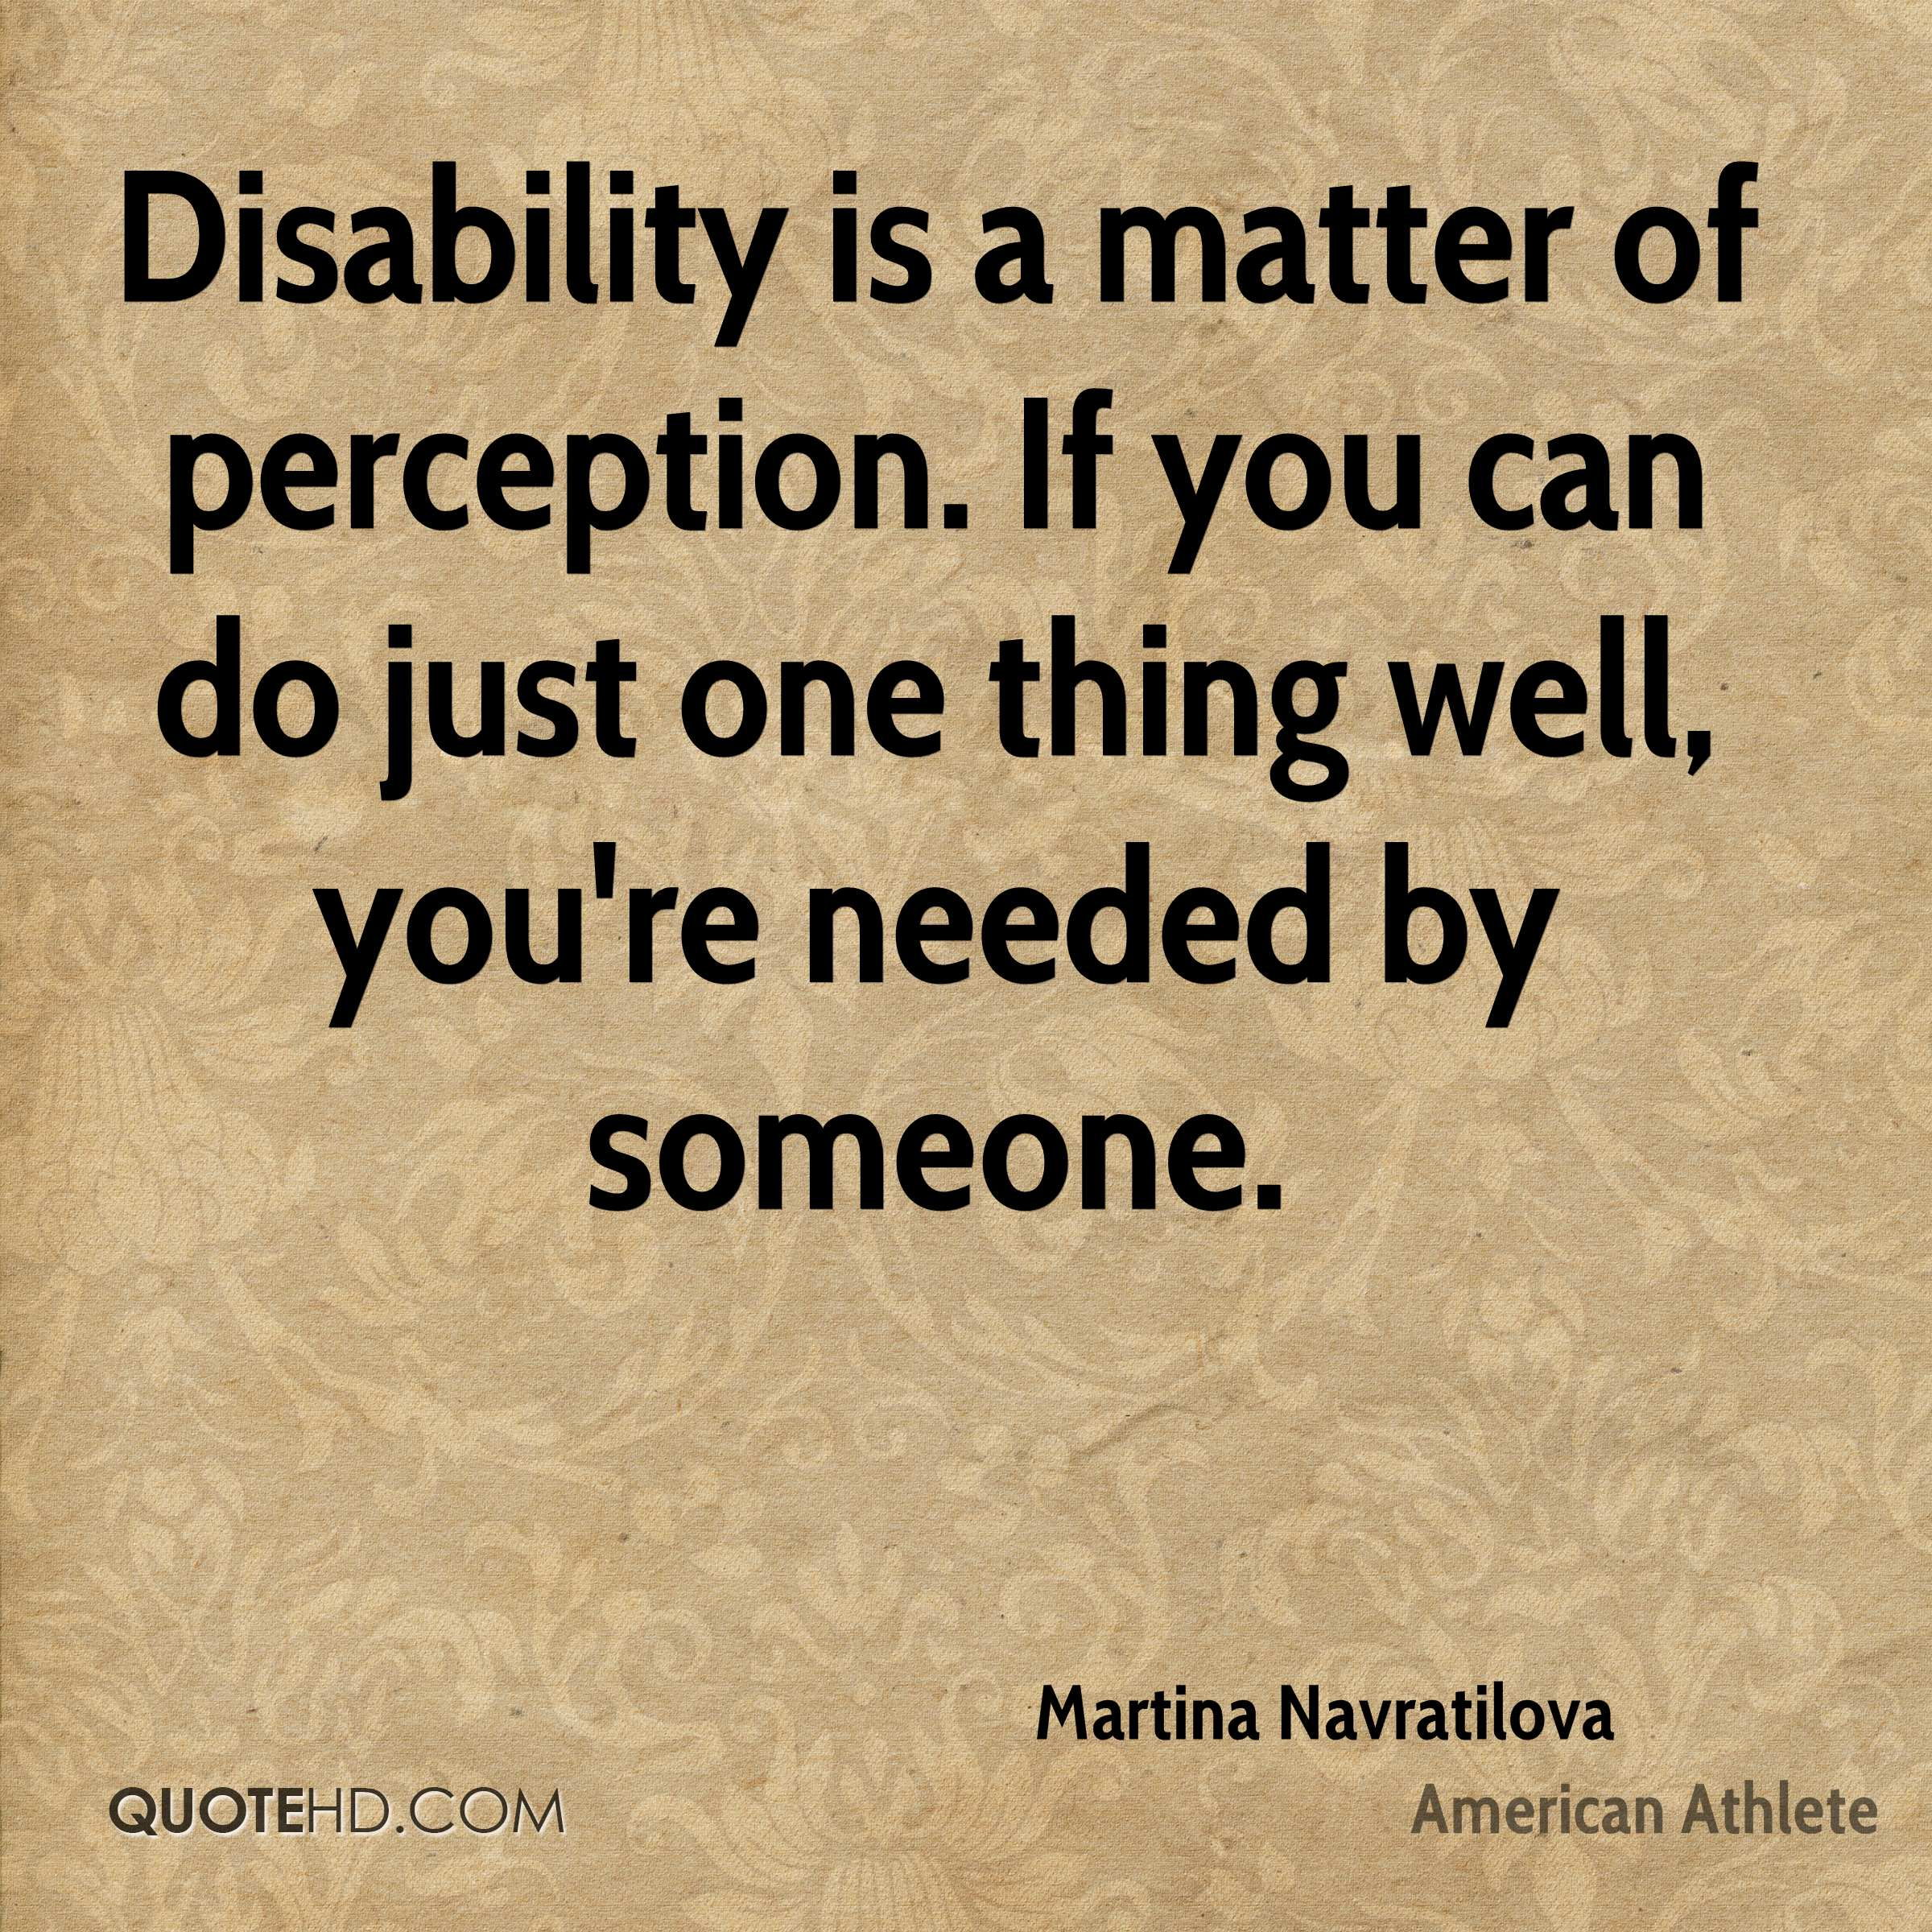 Quotes About Disabilities Disability Quotes Cool Best 25 Disability Quotes Ideas On